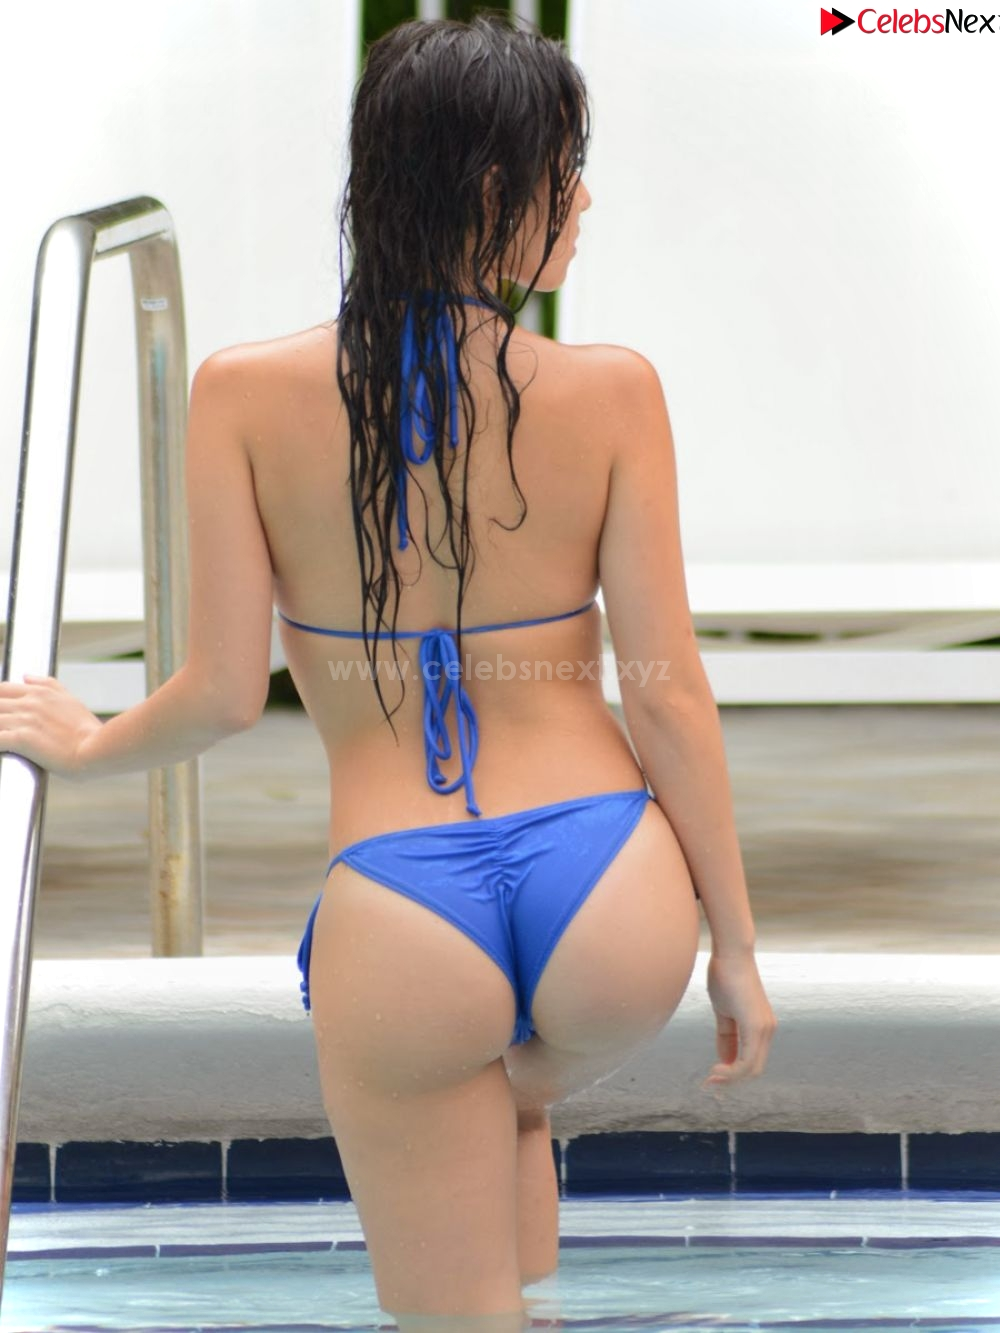 Lisa Opie Booty in sizzling bikini lovely booty sizzling CELEBRITYBOOTY.CO Exclusive Celebrity Pics